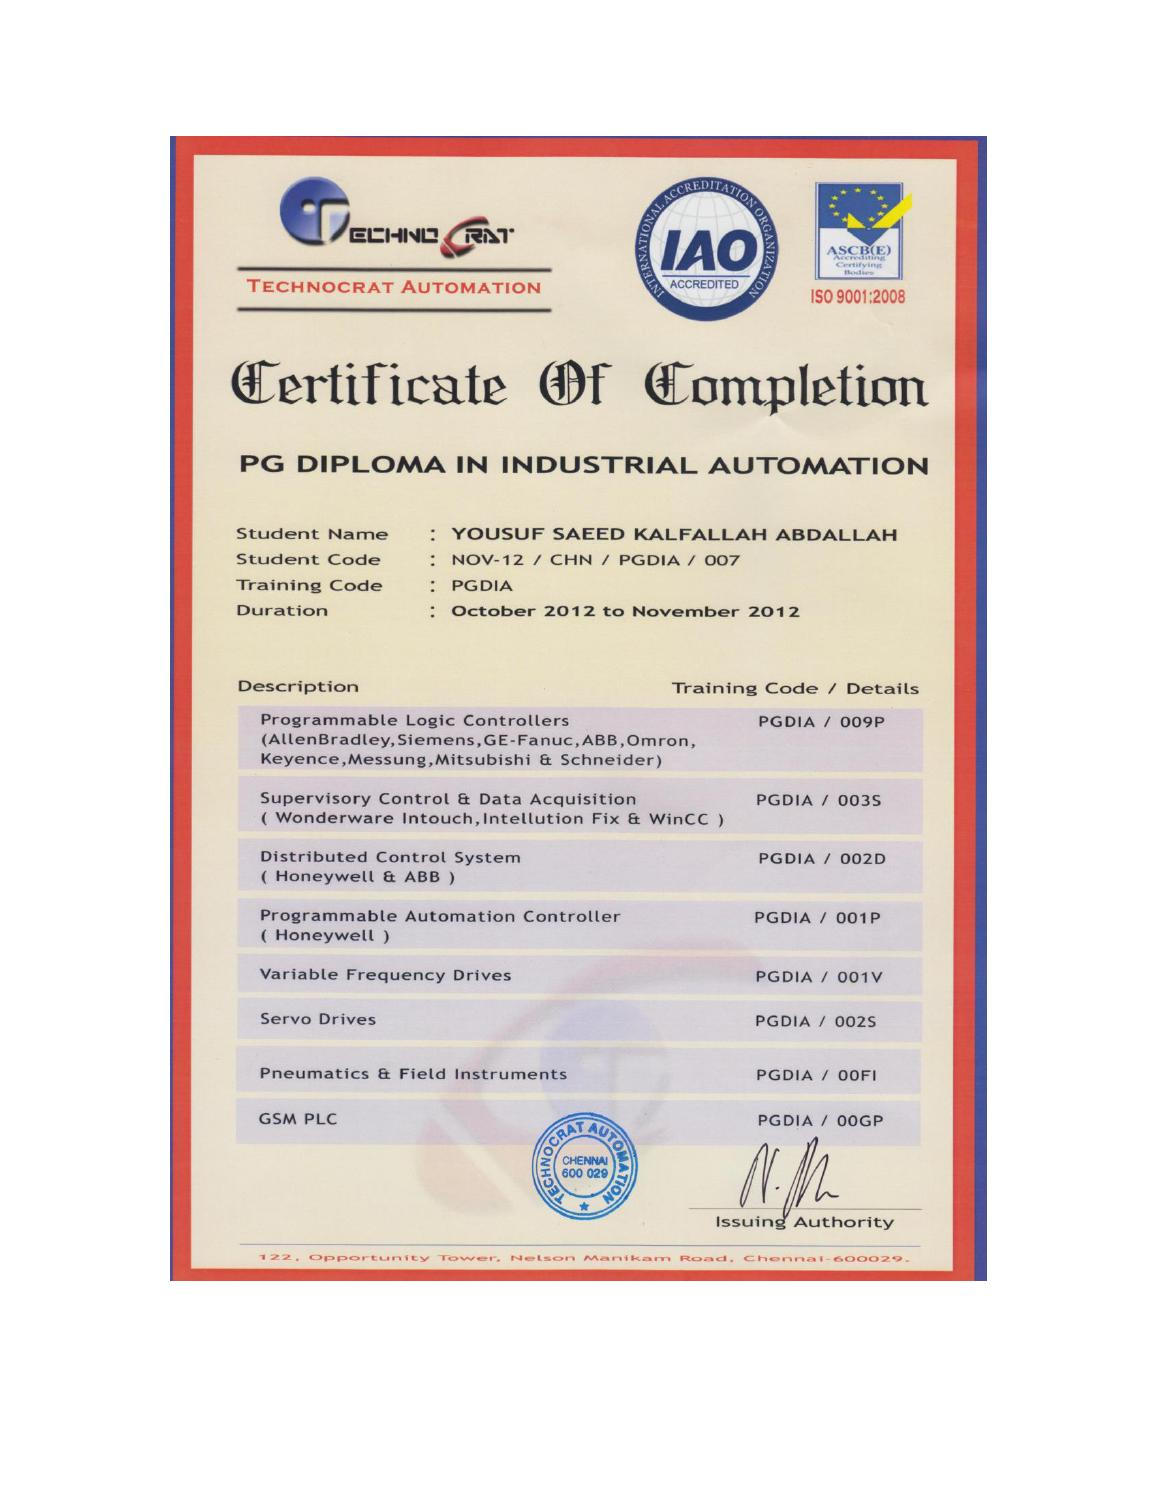 Post graduate diploma in industrial automation by